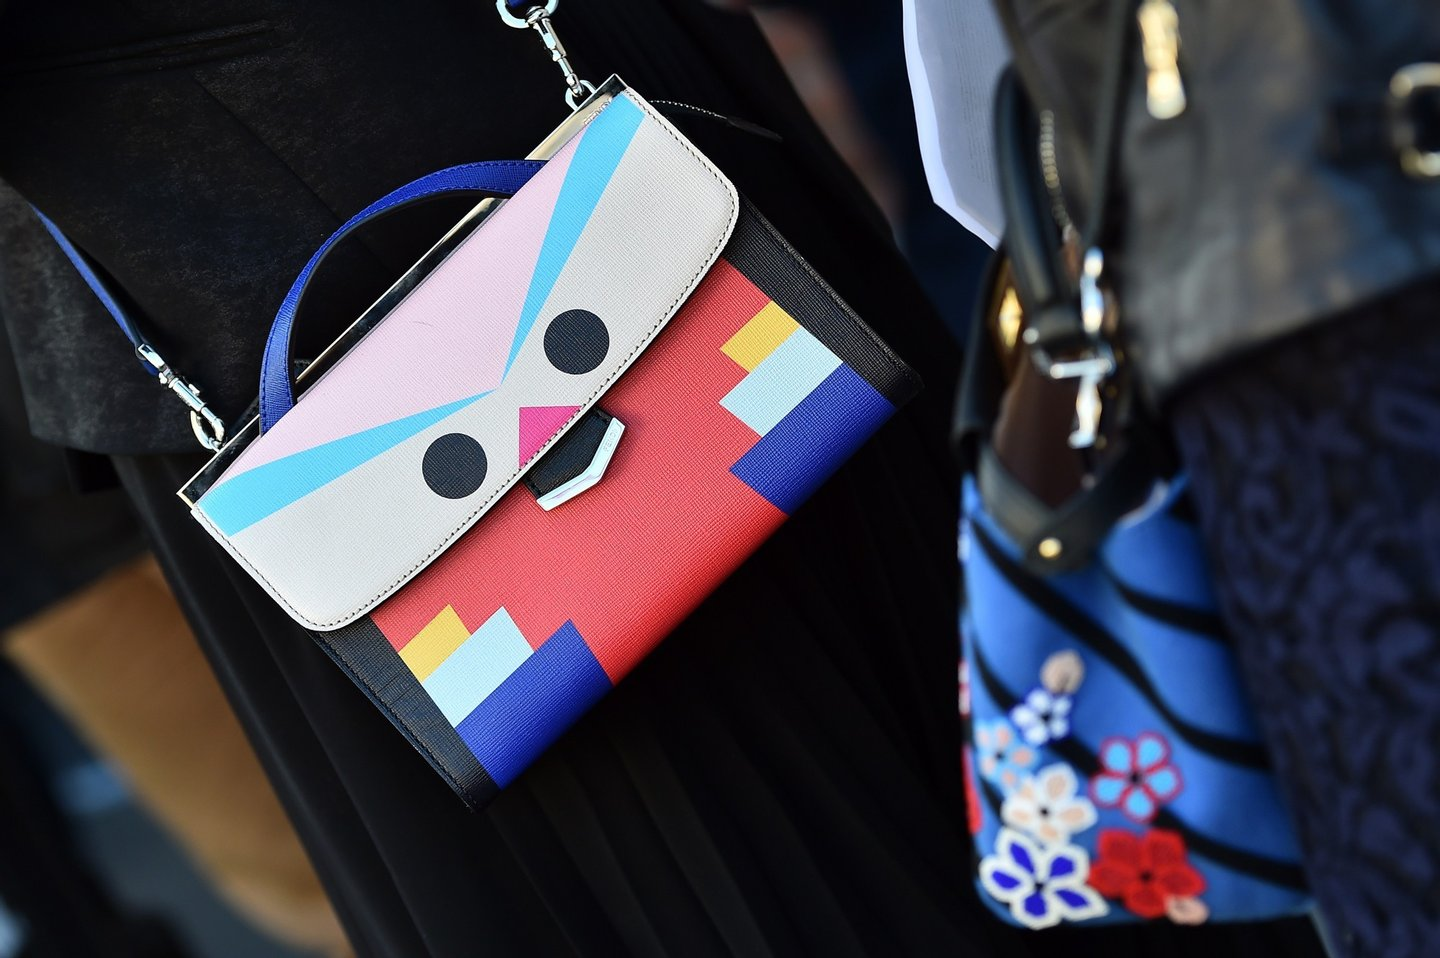 A woman poses with a Fendi bag in the street before the show for fashion house Fendi at the women Fall / Winter 2015/16 Milan's Fashion Week on February 26, 2015.   AFP PHOTO / GABRIEL BOUYS        (Photo credit should read GABRIEL BOUYS/AFP/Getty Images)